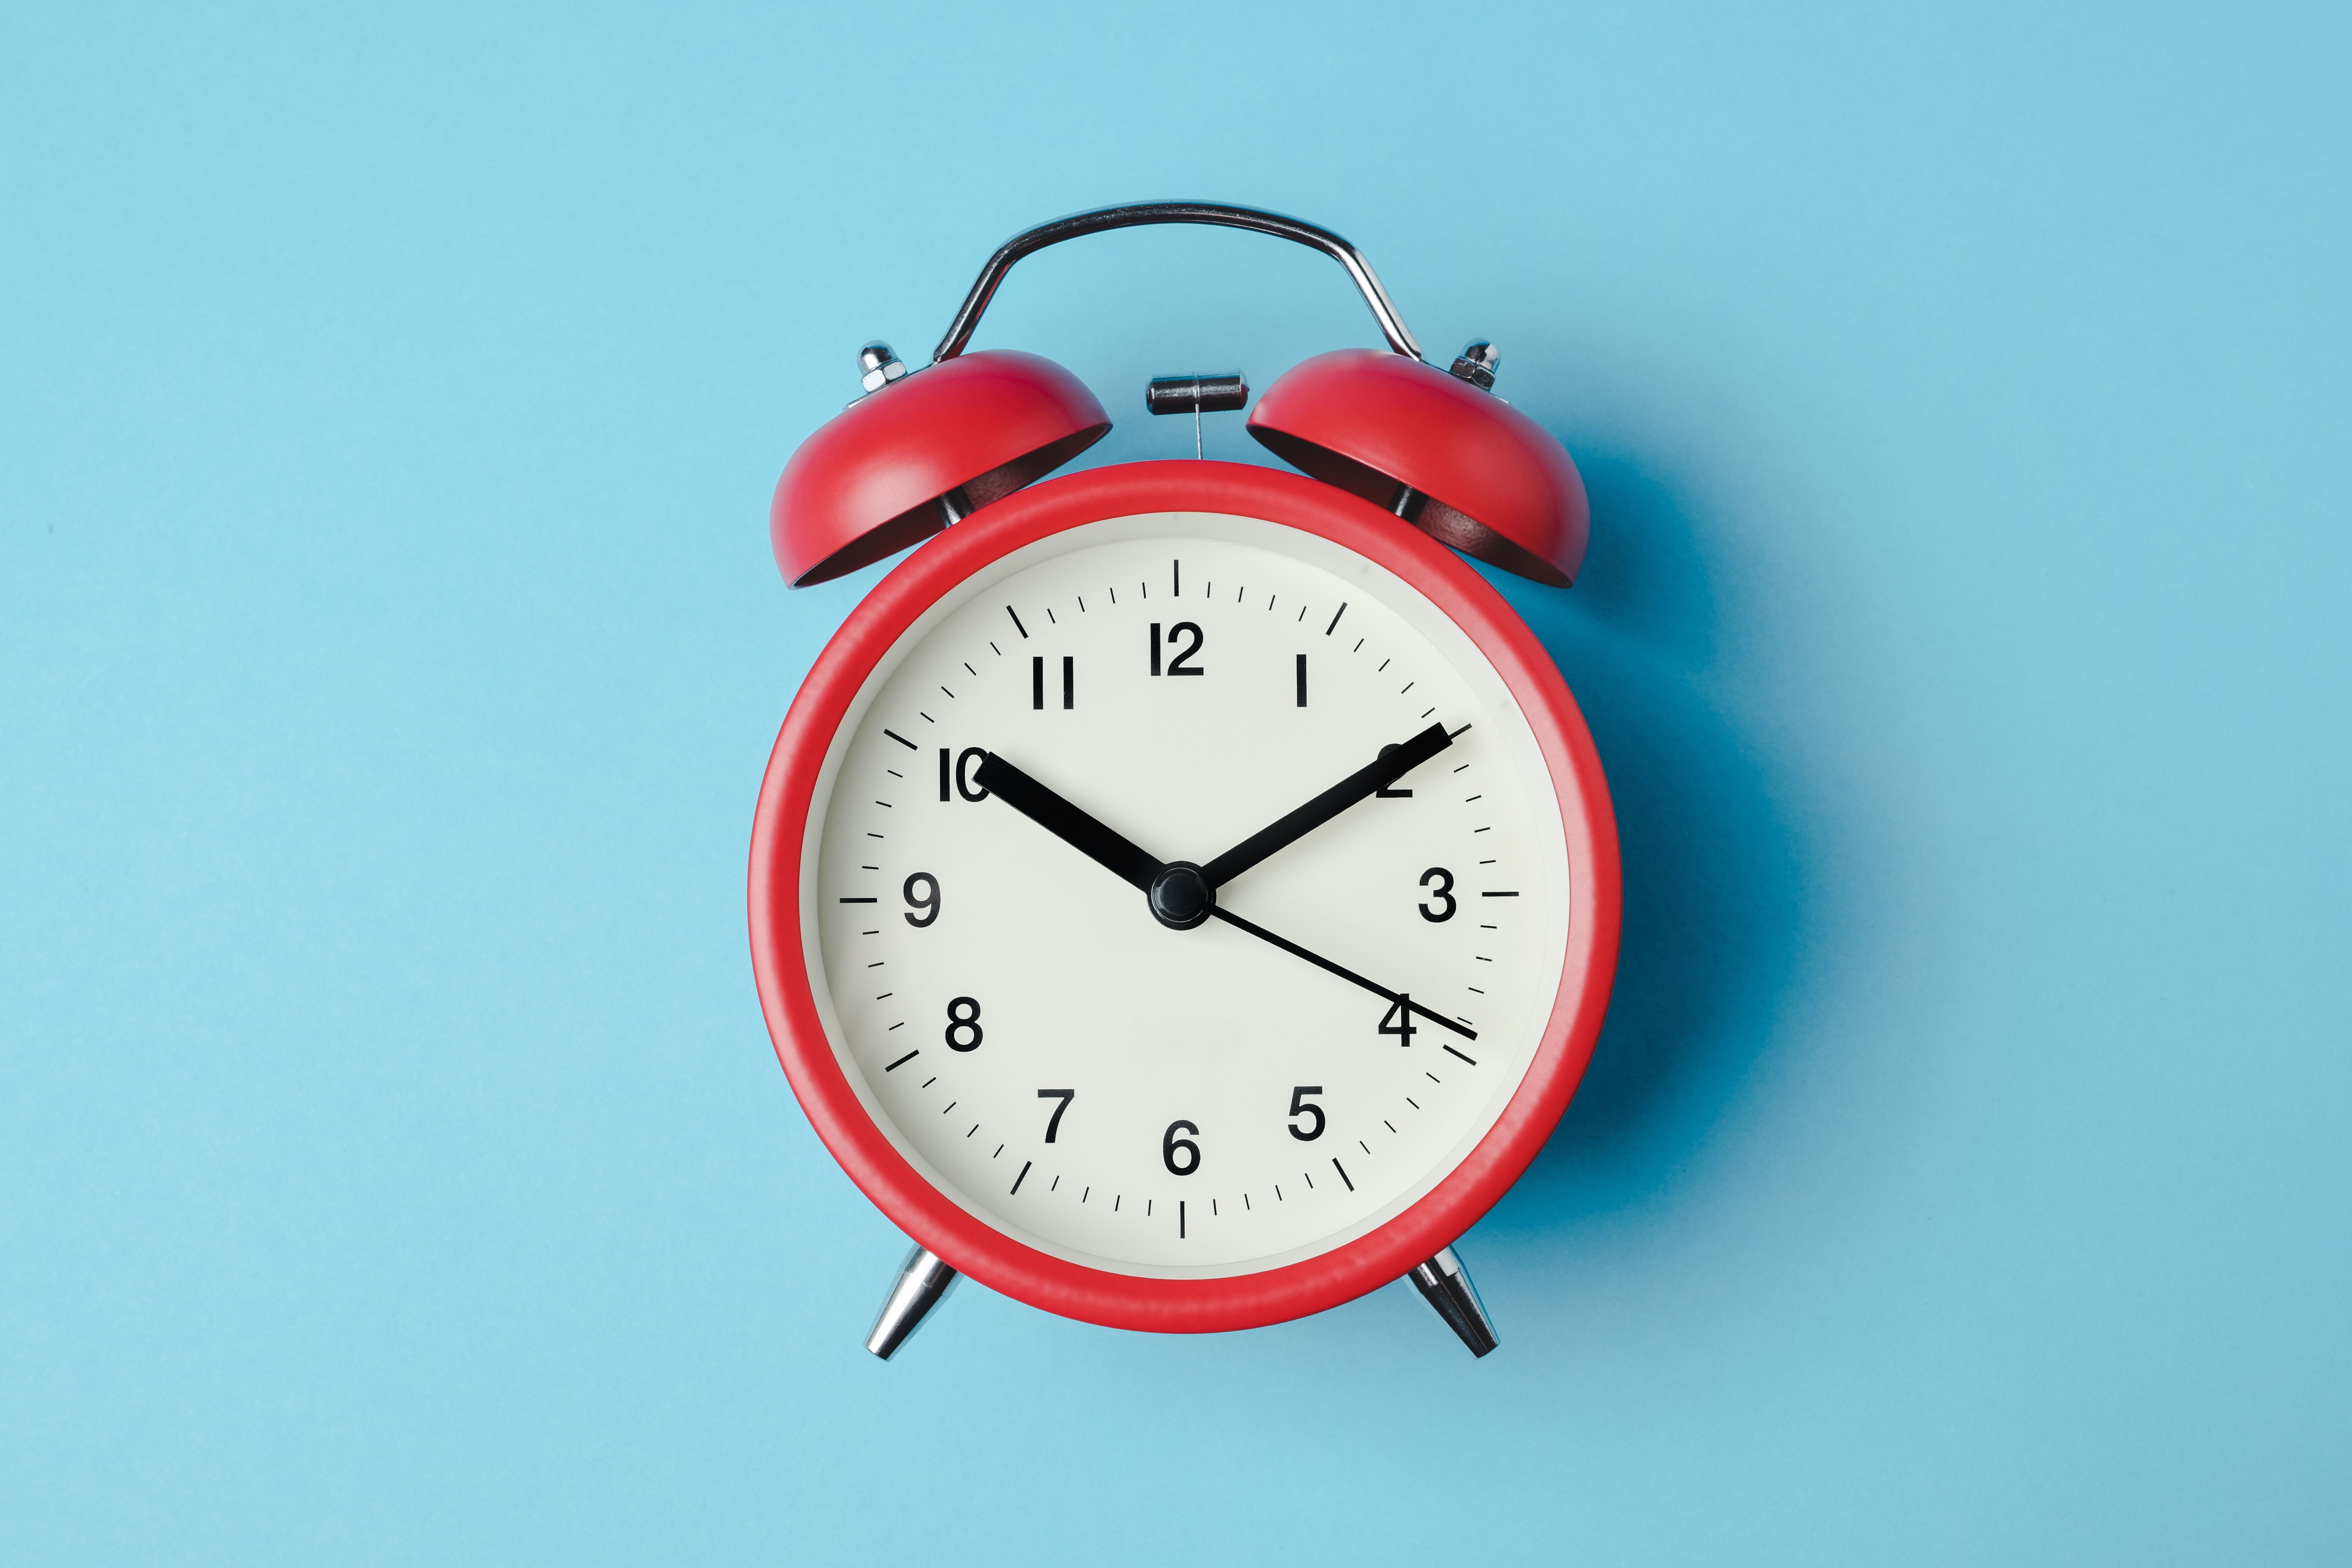 Red clock against blue background